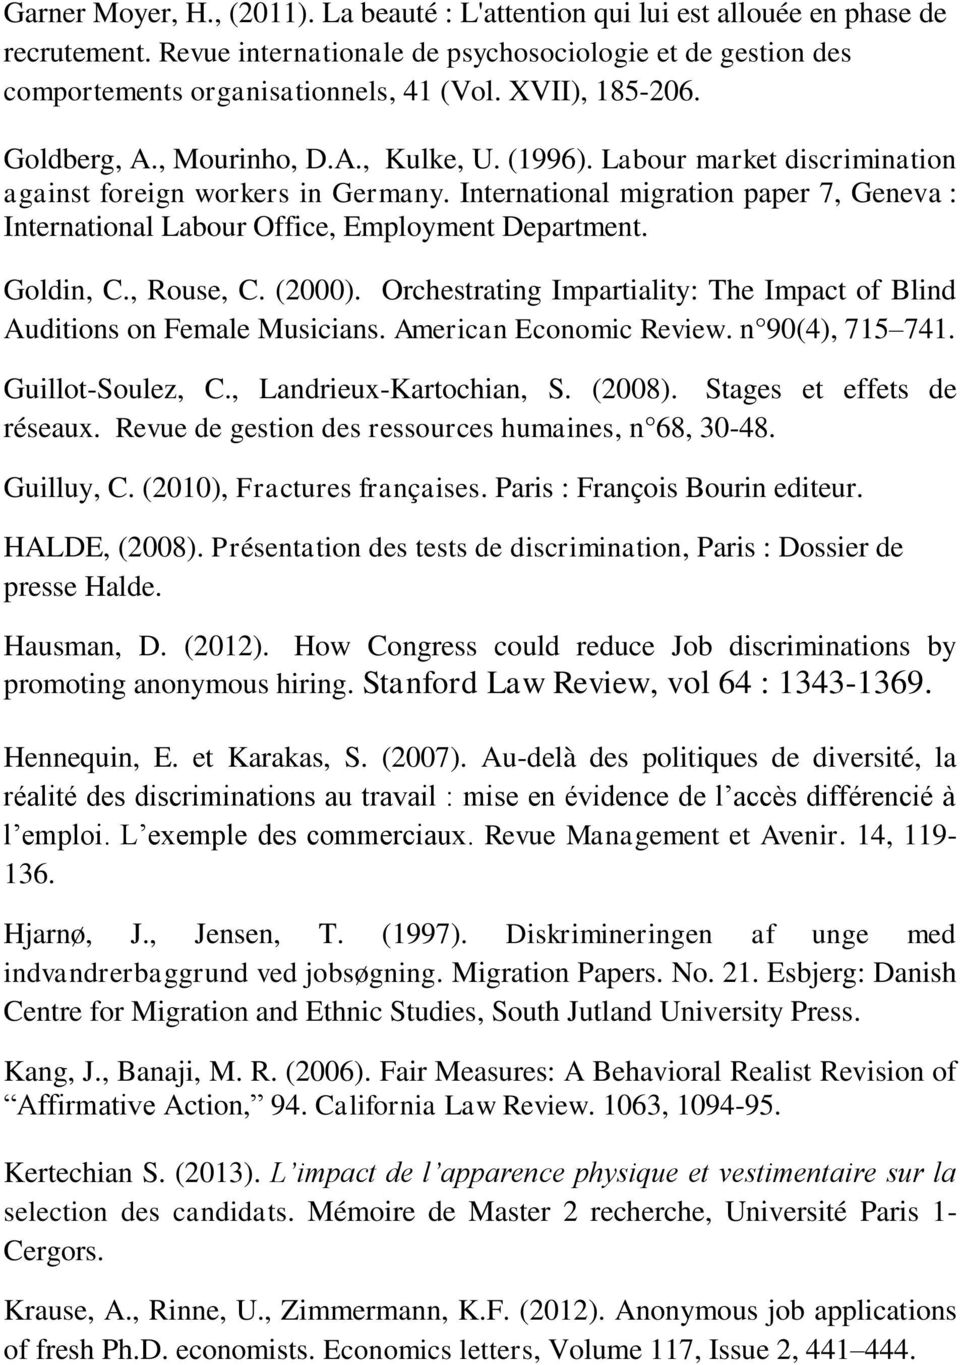 International migration paper 7, Geneva : International Labour Office, Employment Department. Goldin, C., Rouse, C. (2000).